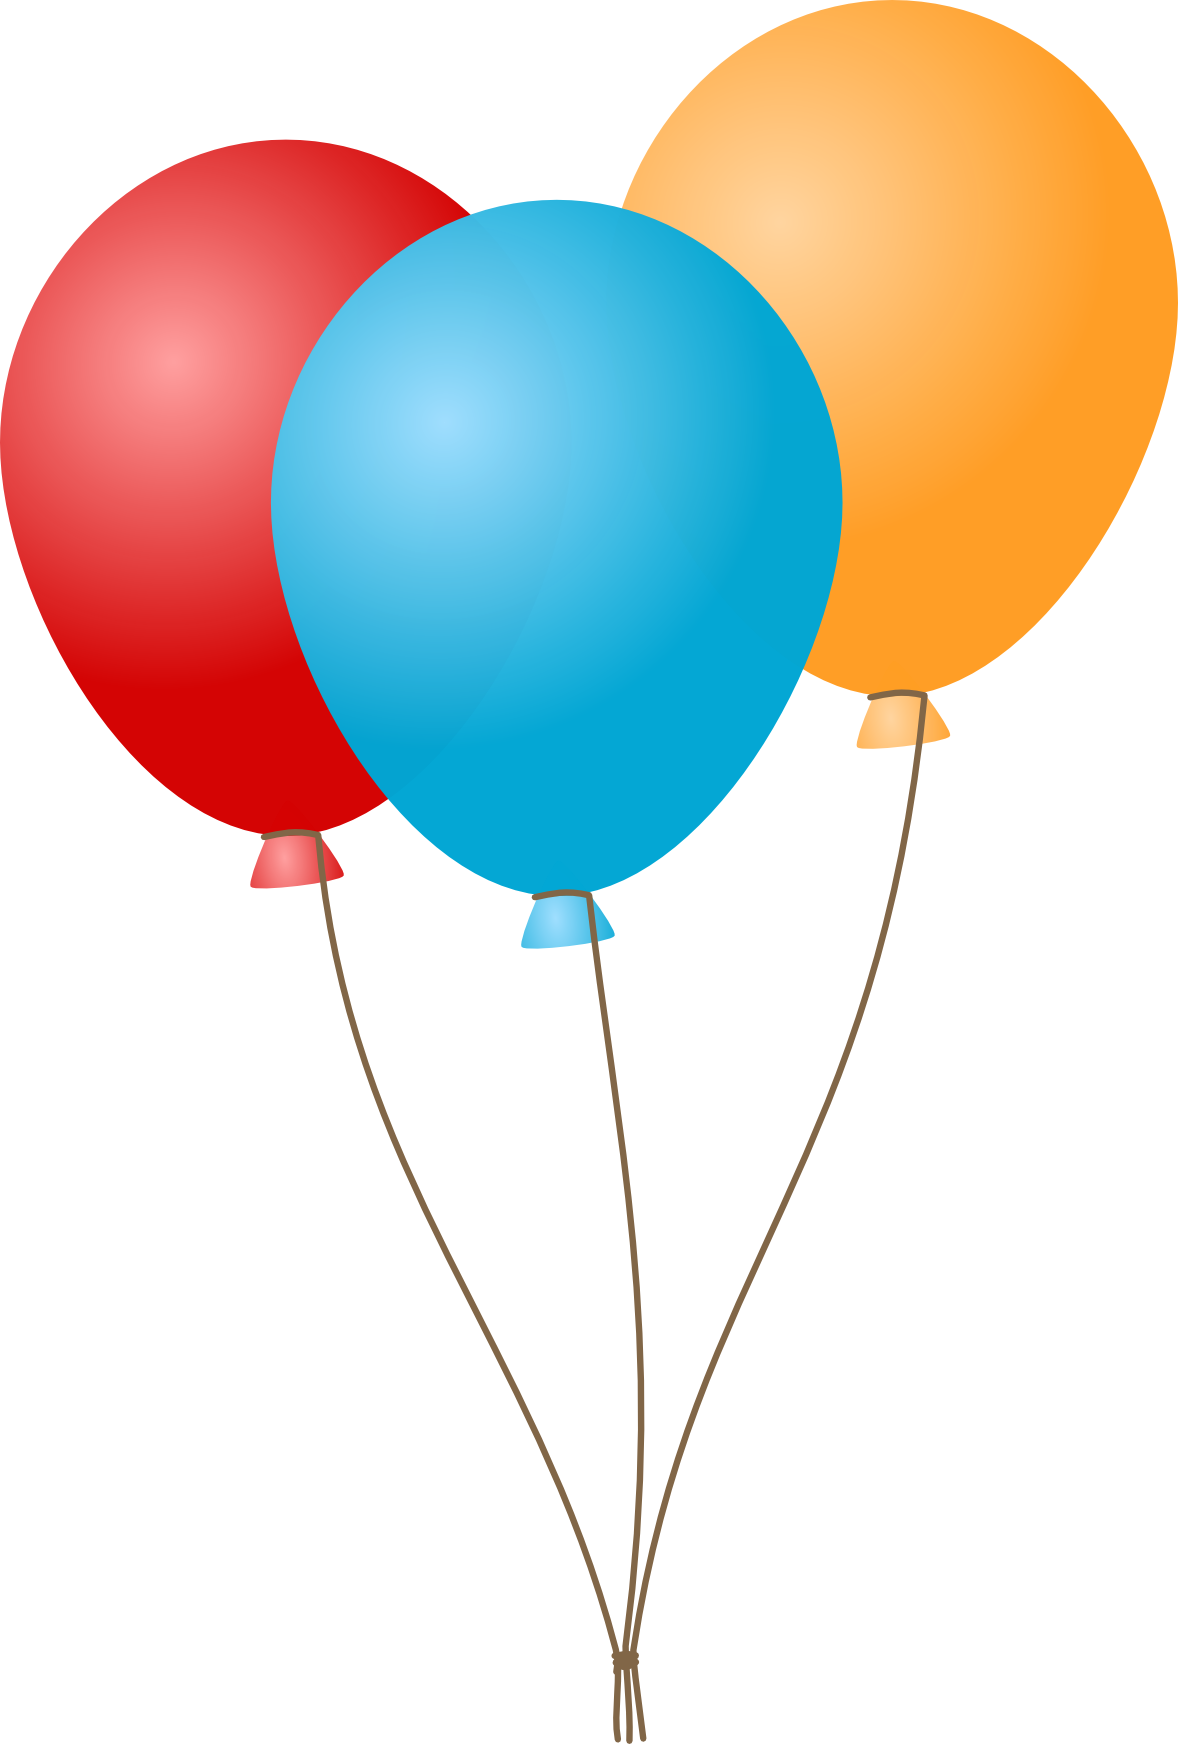 Dark Blue clipart balloon Images image balloon download picture